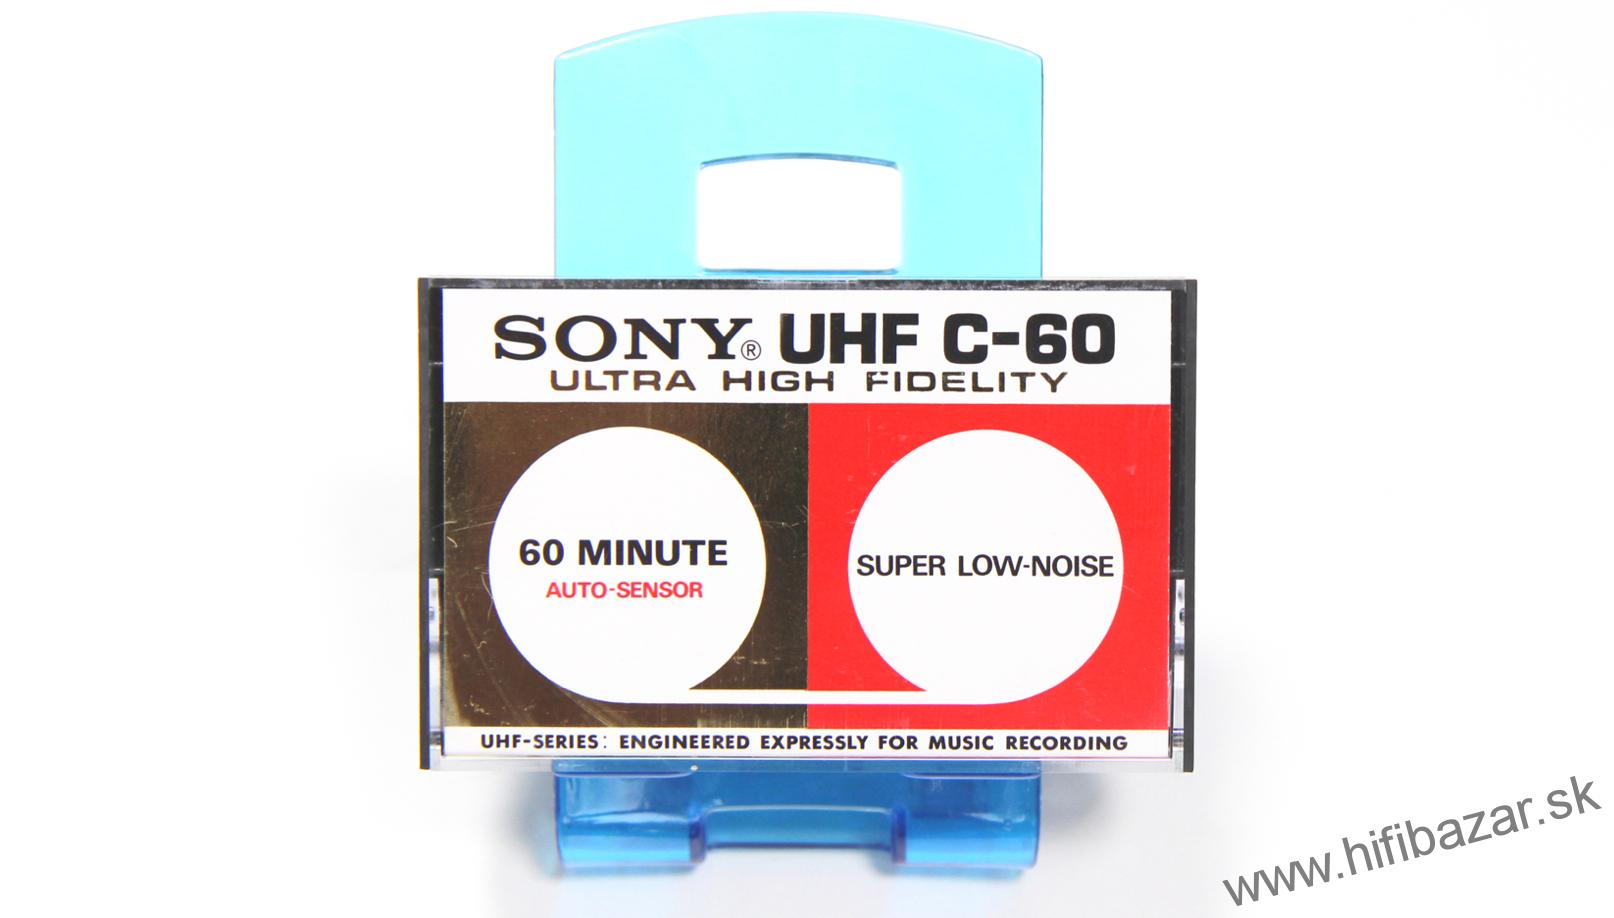 SONY UHFC-60 Position Normal